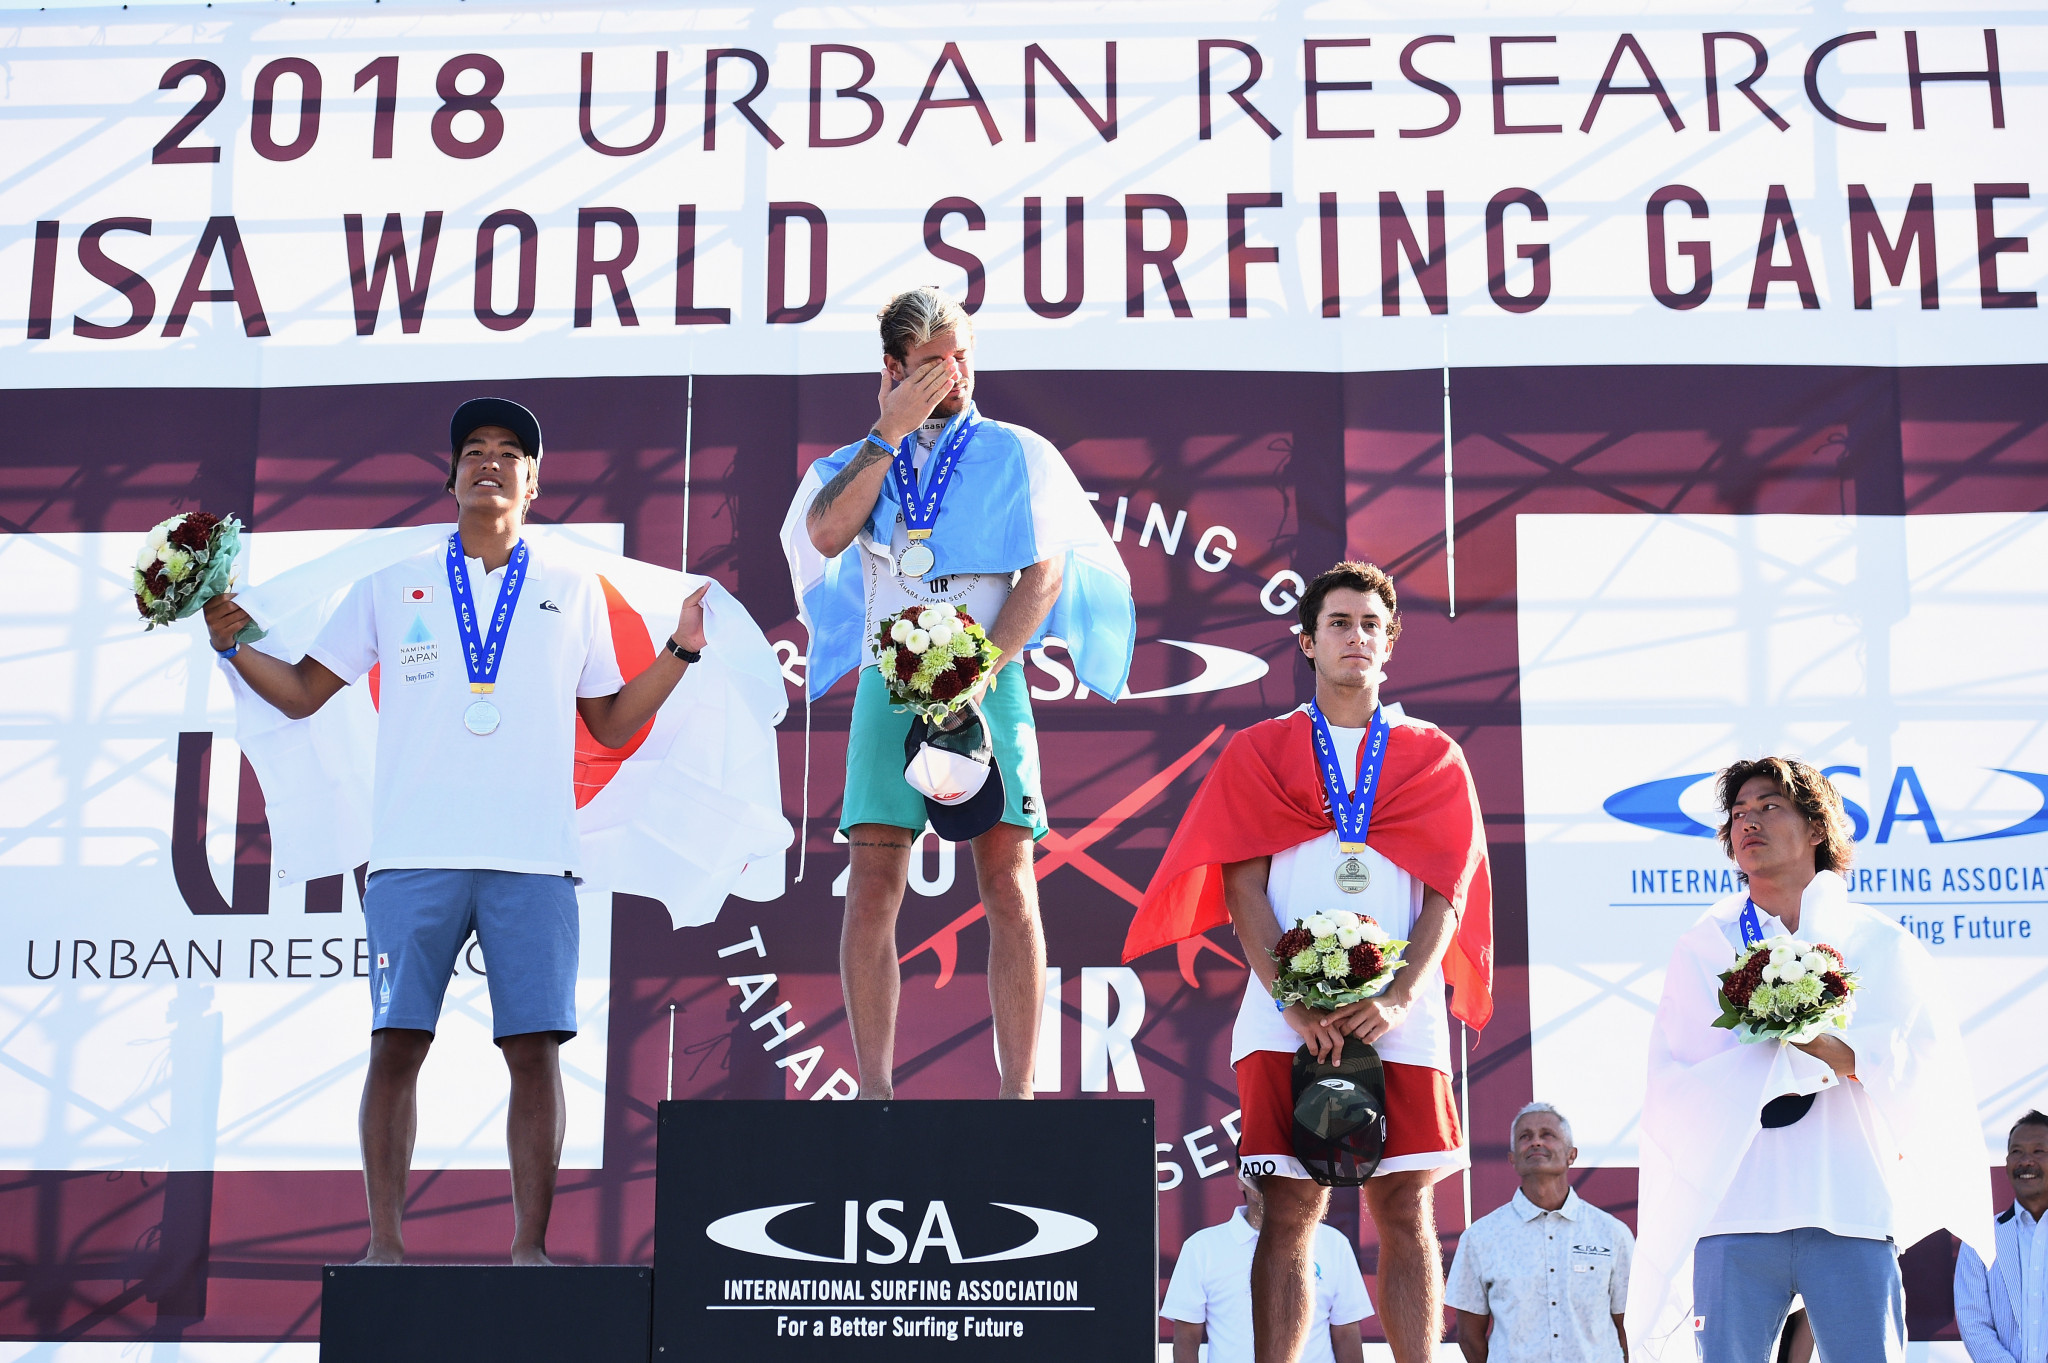 Santiago Muñiz of Argentina, Kanoa Igarashi, of Japan, Lucca Mesinas of Peru and Shun Murakami of Japan on the podium after earning medals at the ISA World Surfing Games in Tahara in Japan ©Getty Images